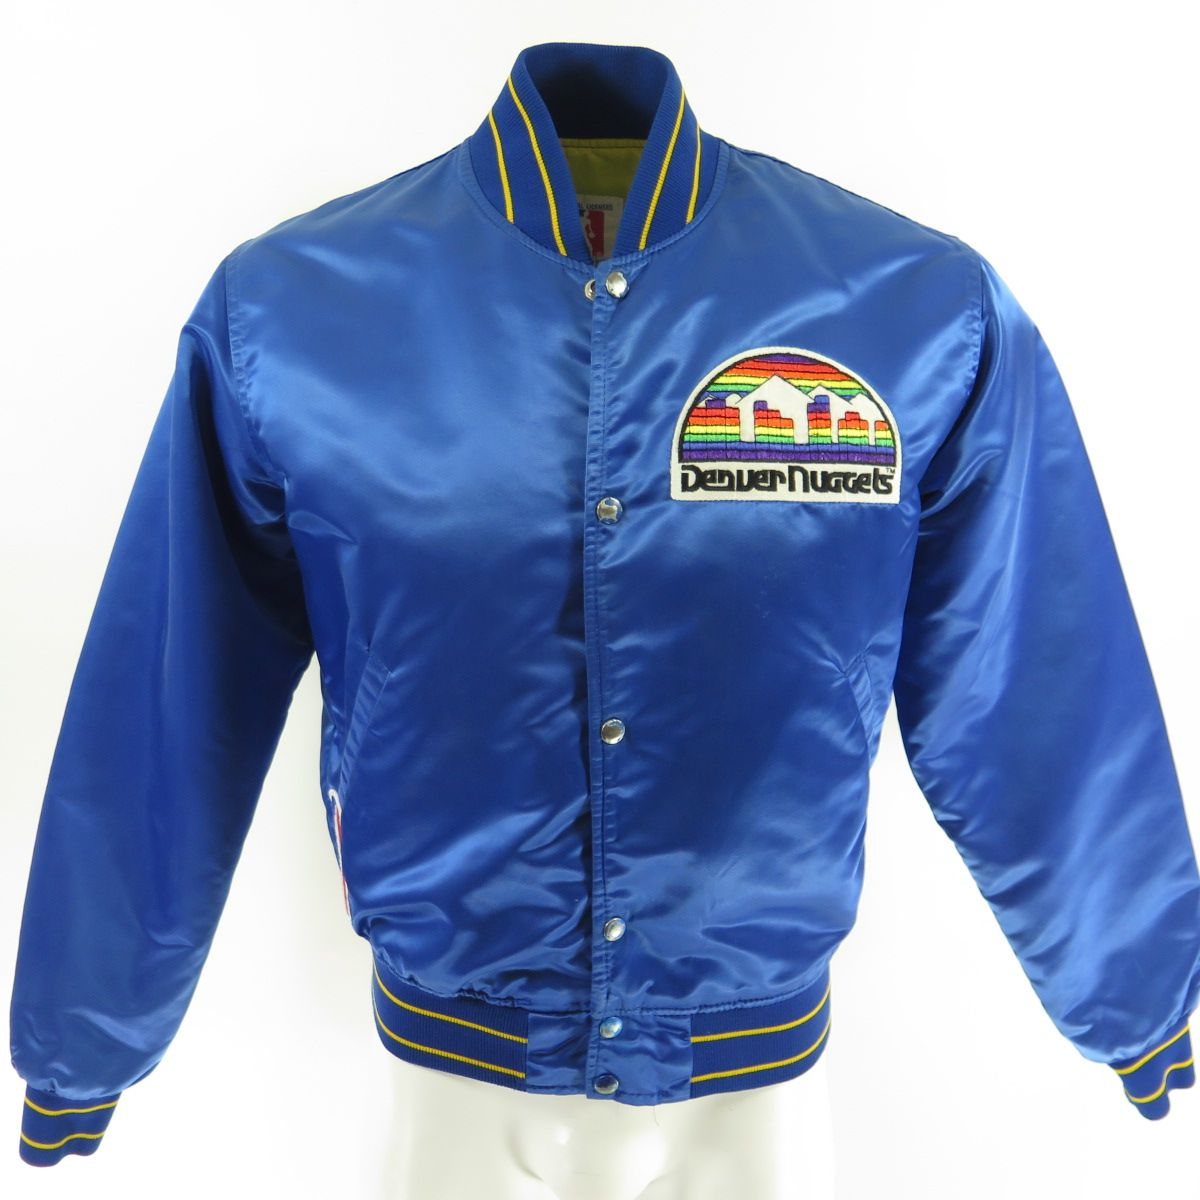 Vintage 90s Denver Nuggets Jacket Starter Satin Rainbow Logo Basketball Nba M The Clothing Vault Vintage Sports Clothing Retro Jacket Logo Basketball